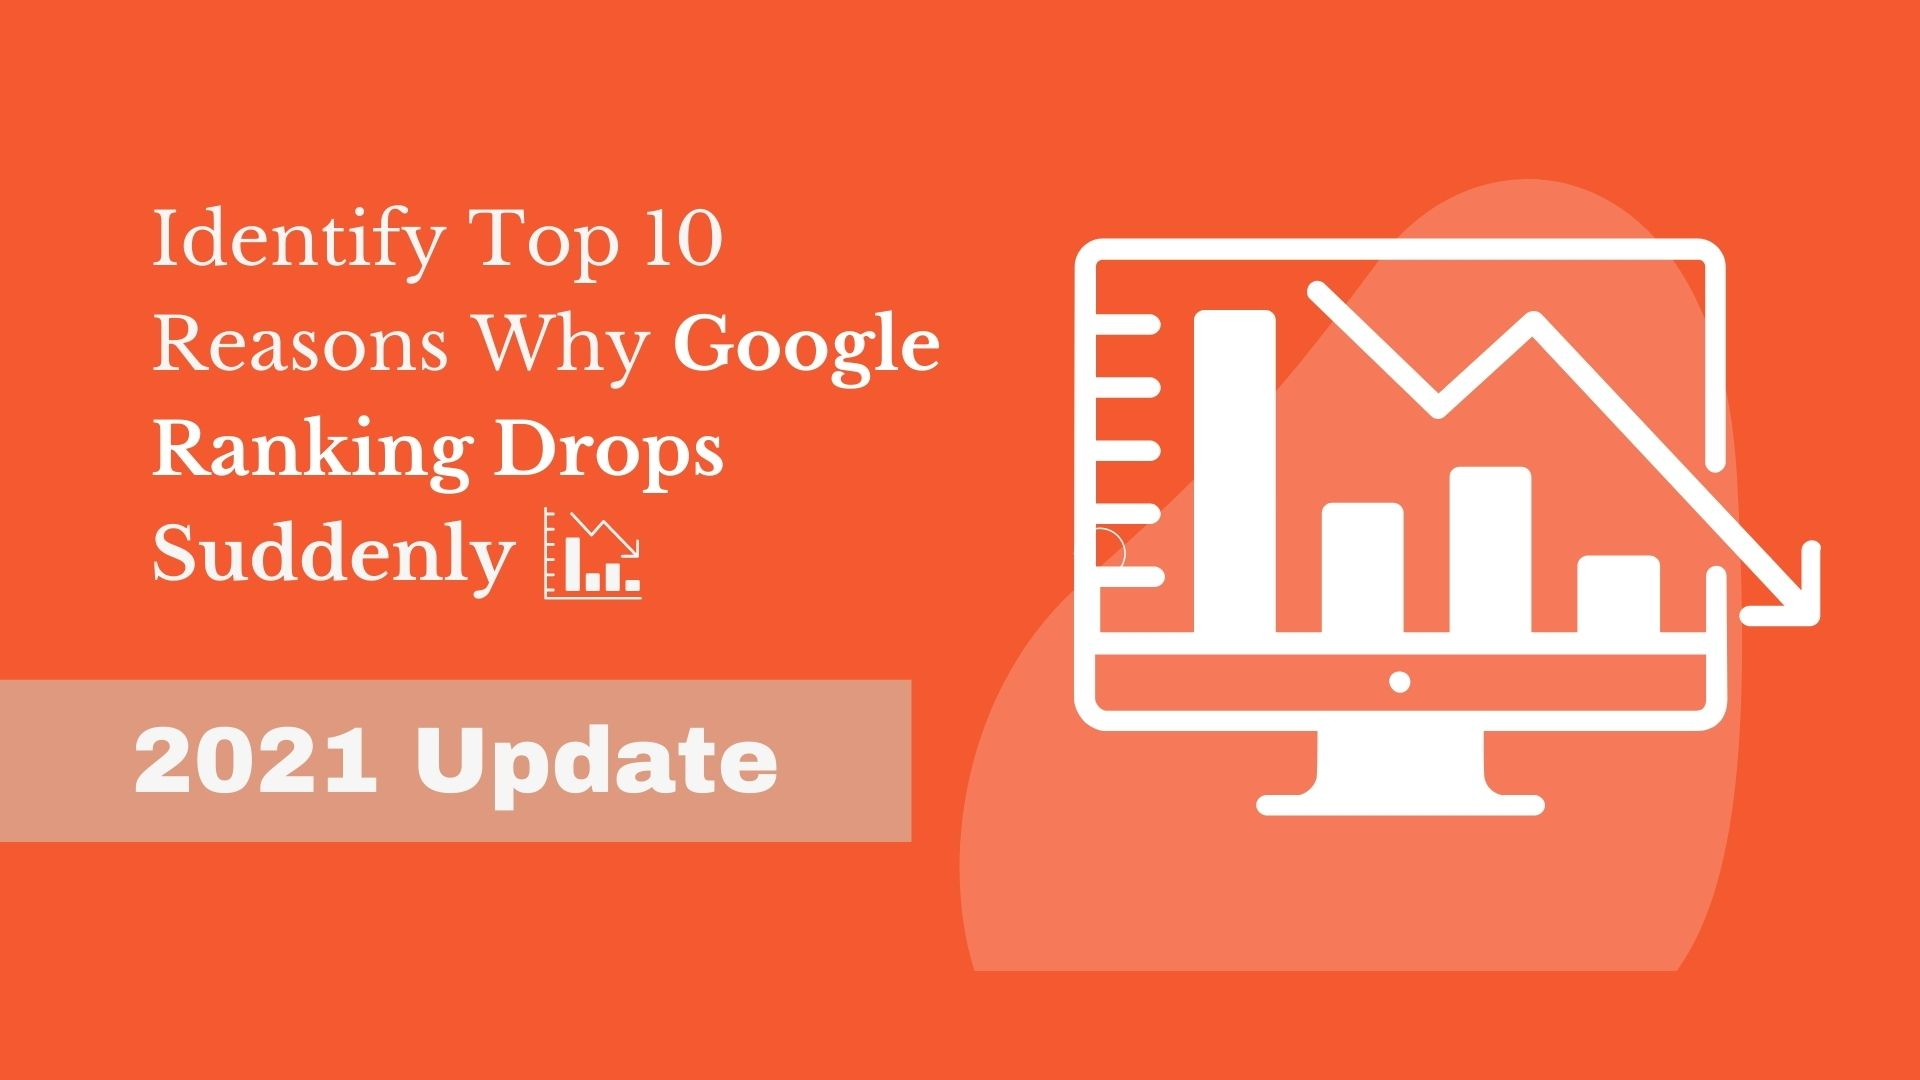 Identify Top 10 Reasons Why Google Ranking Drops Suddenly -2021 Update post thumbnail image